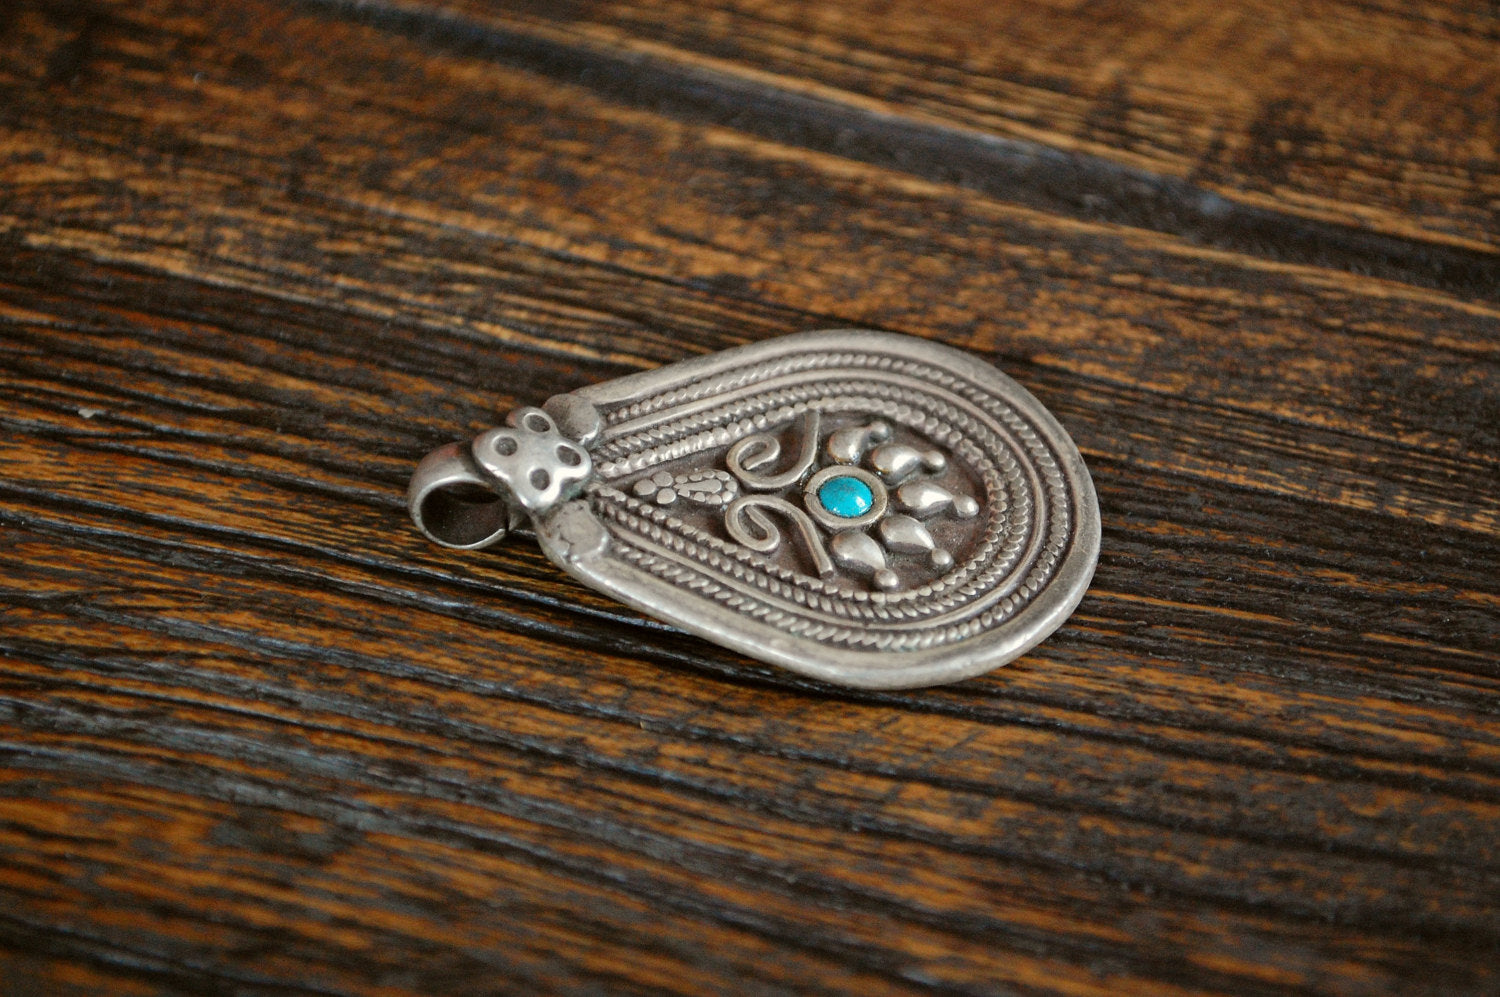 Tribal Indian Silver Pendant with Turquoise - Tribal Rajasthan Silver Amulet - Ethnic Tribal Indian Pendant - Gypsy Silver Pendant